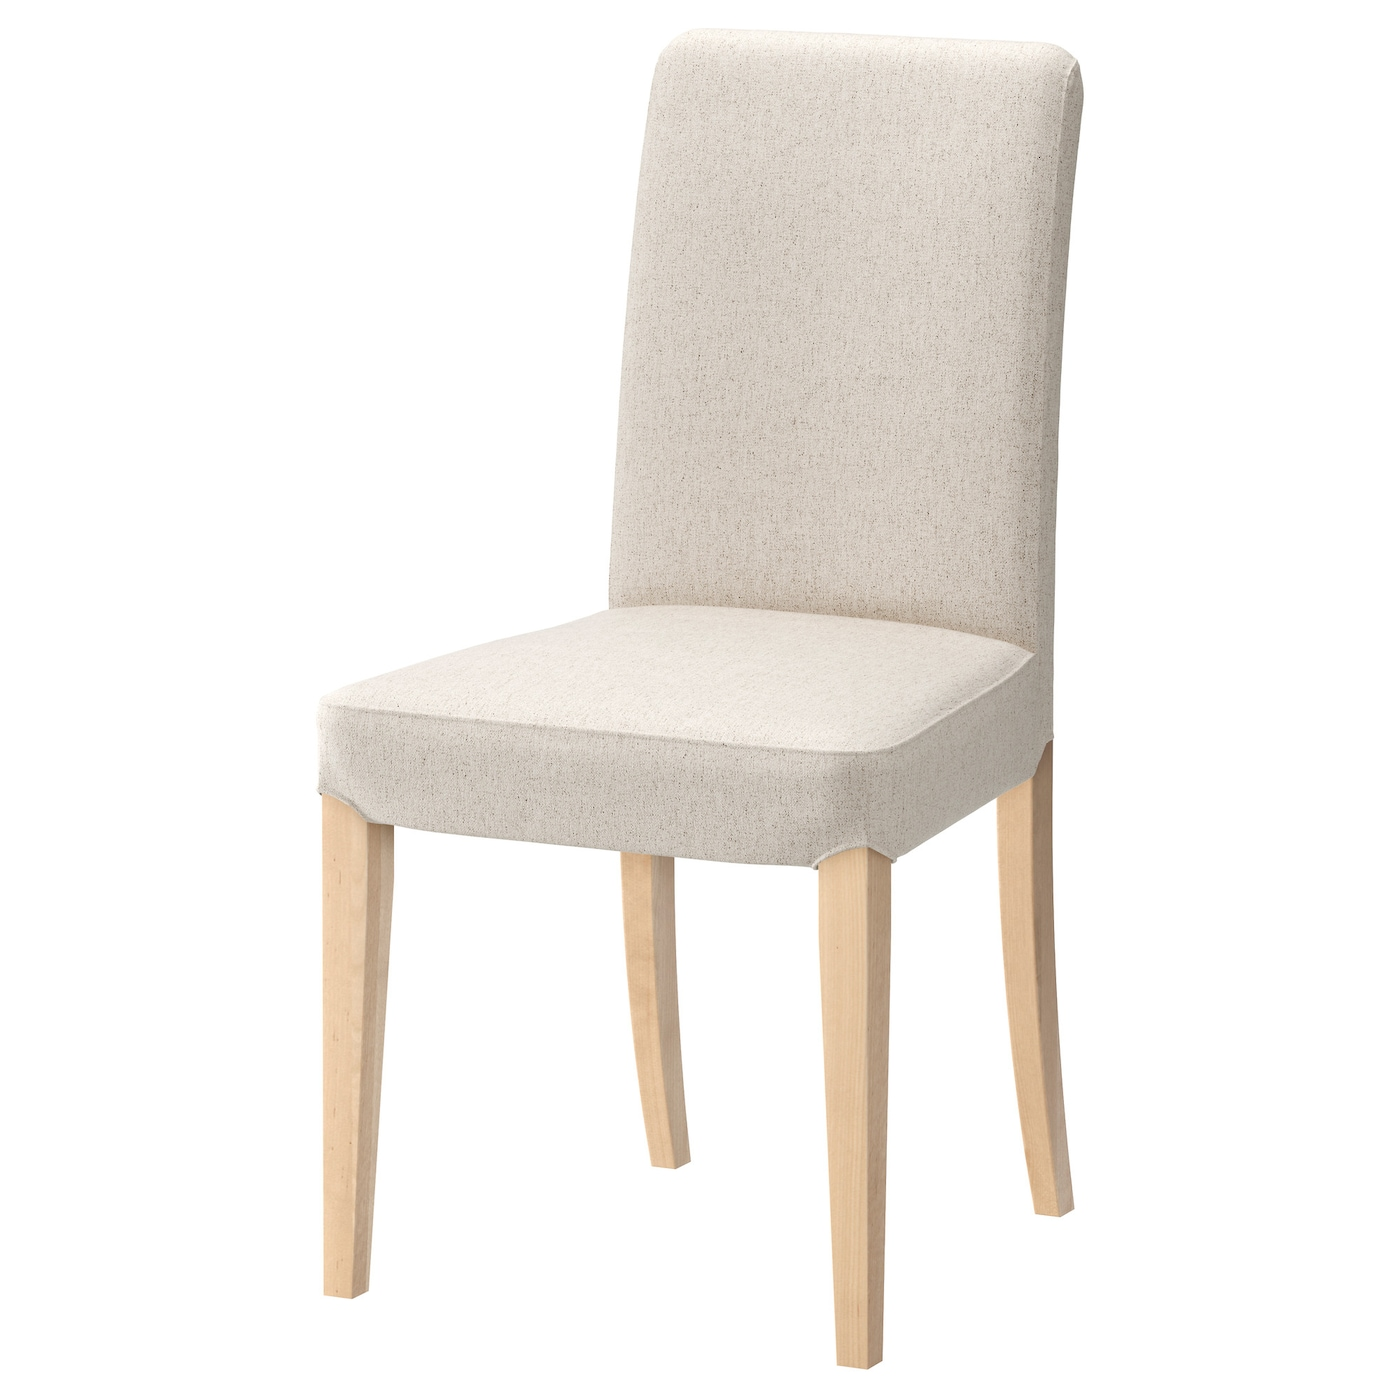 Henriksdal chair birch linneryd natural ikea for Chaise jysk